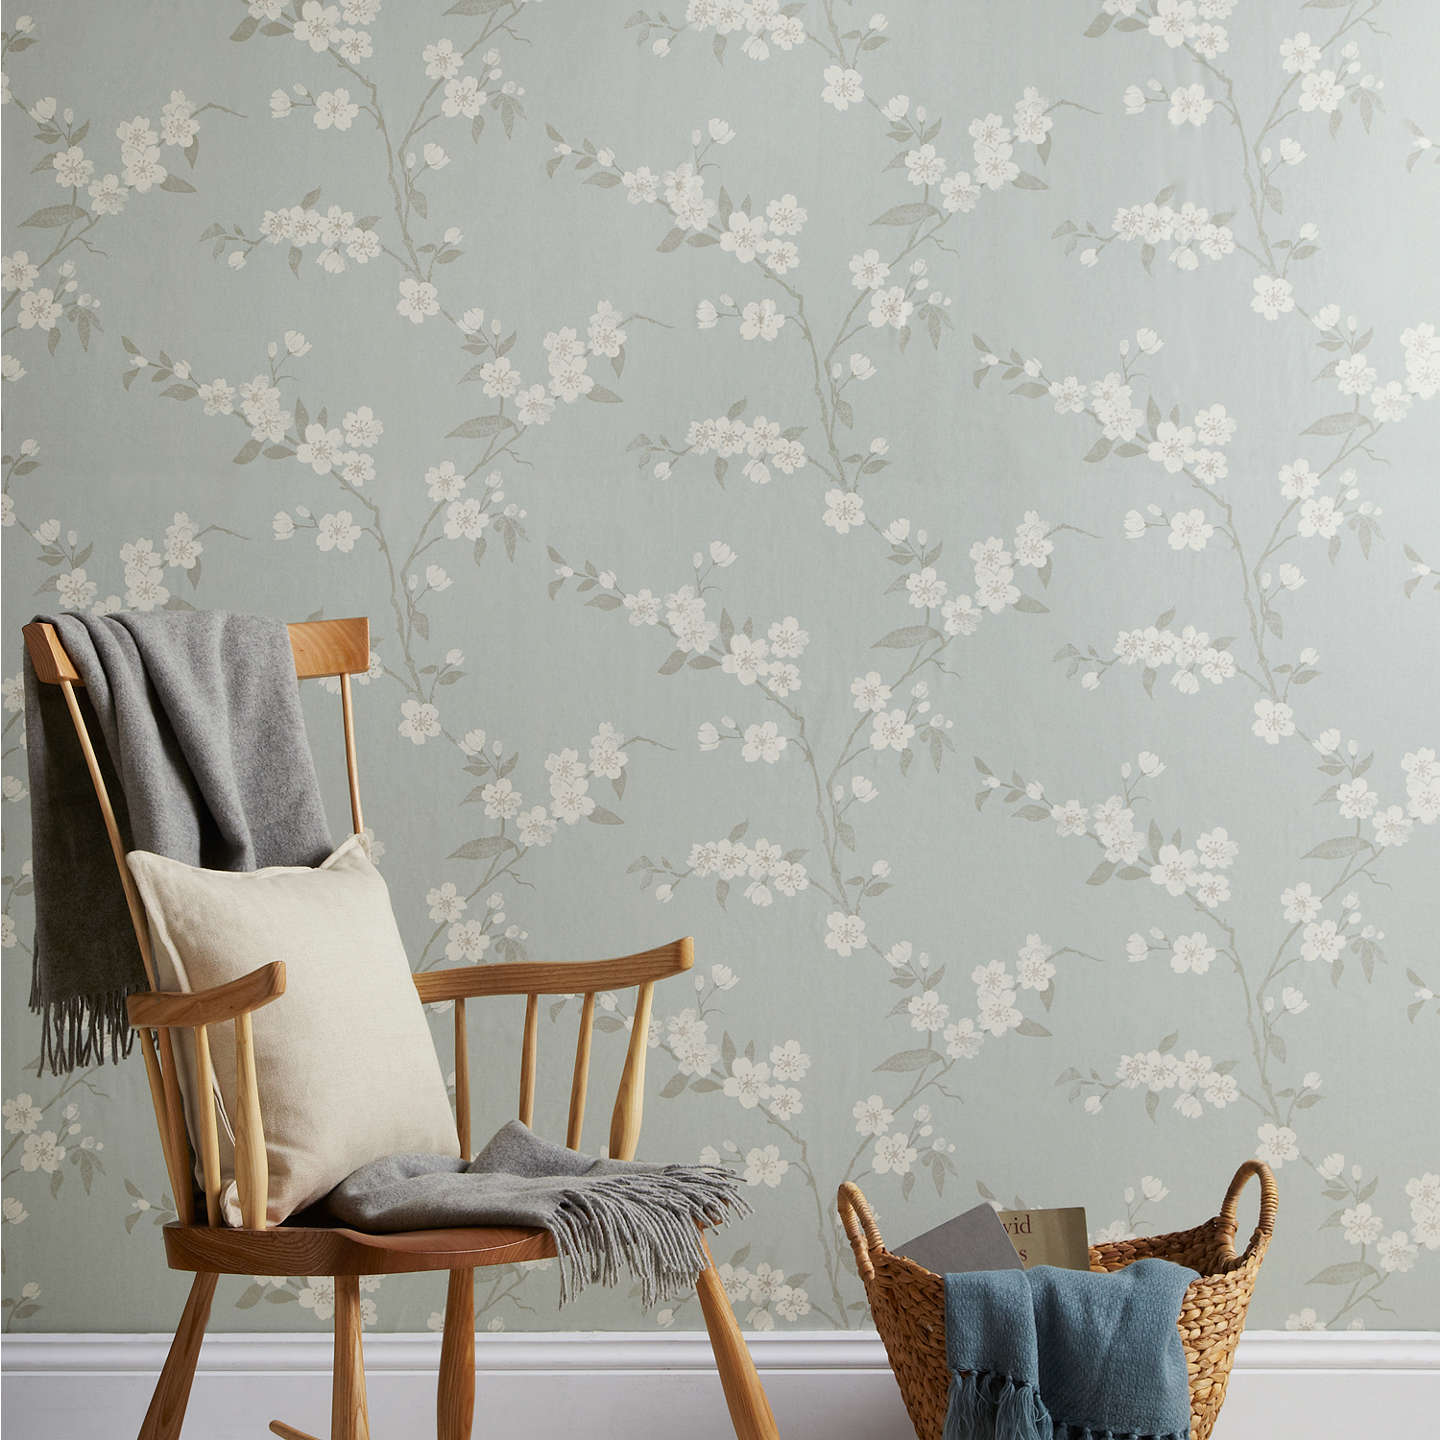 John lewis cherry blossom wallpaper at john lewis for Bedroom inspiration john lewis